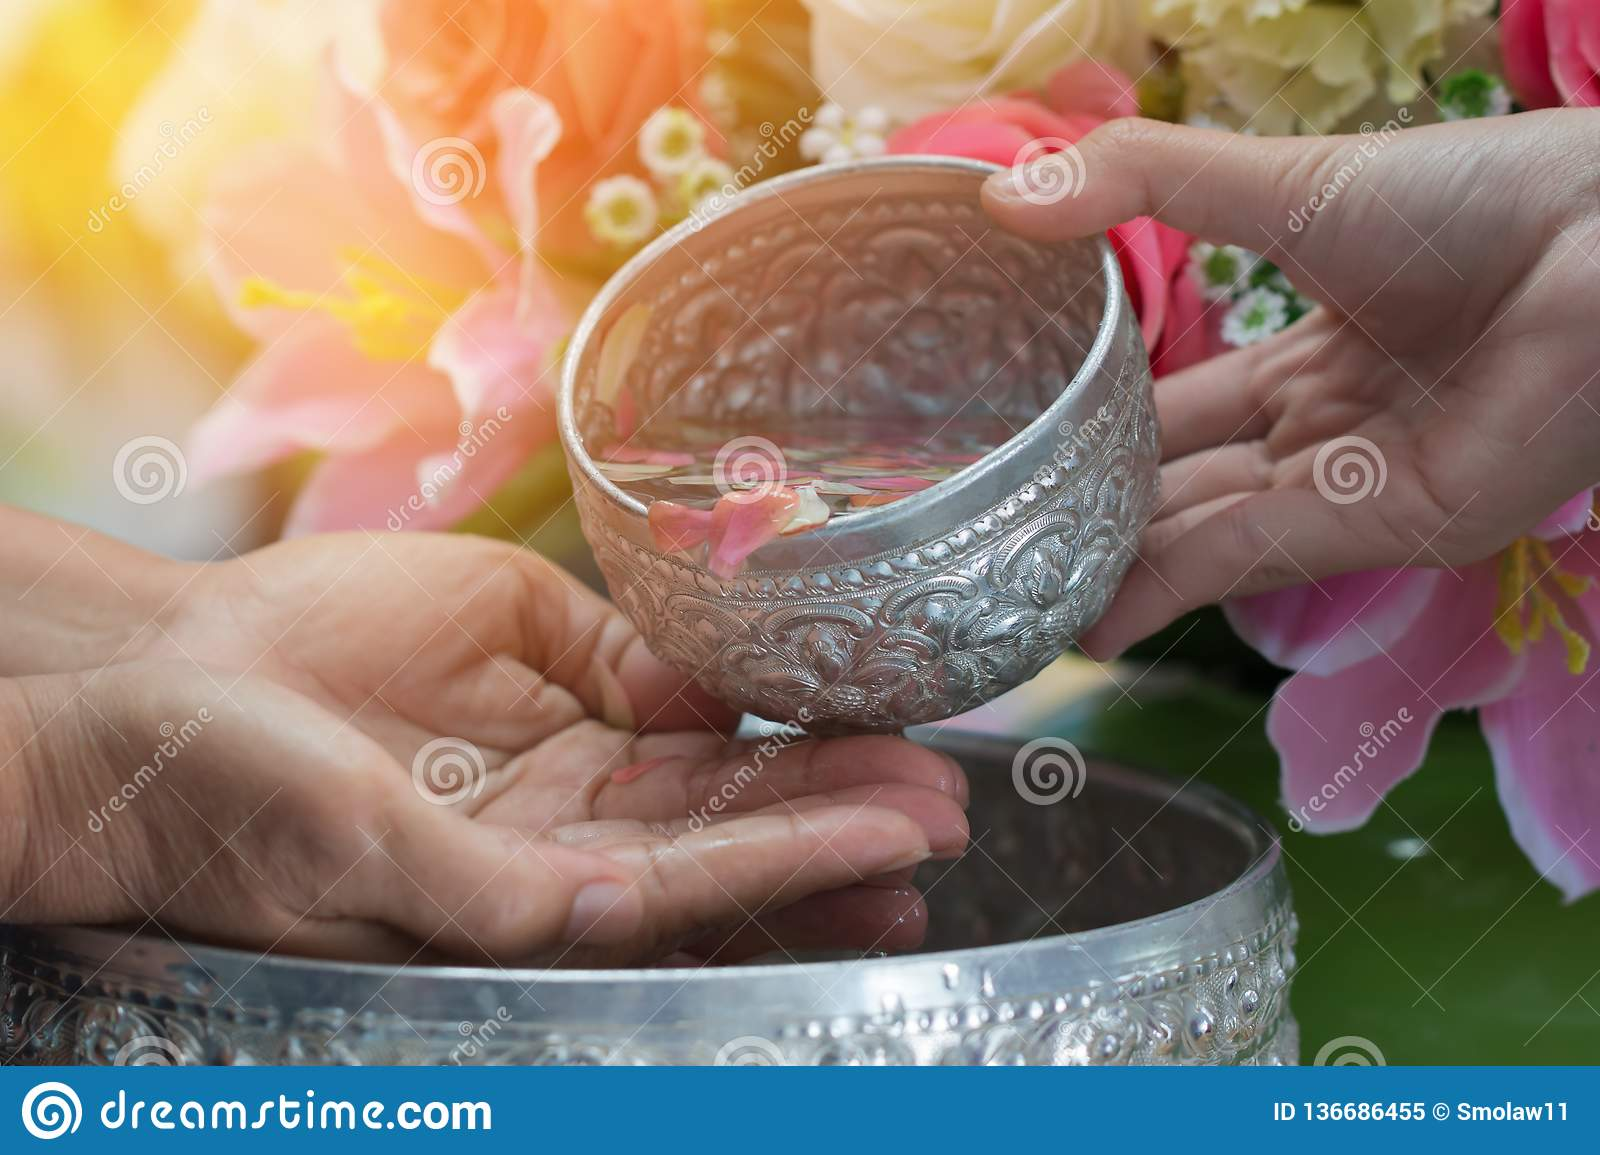 Songkran Thai festival concept : Thai people celebrate Songkran in new year water festival by giving garlands to elder seniors and